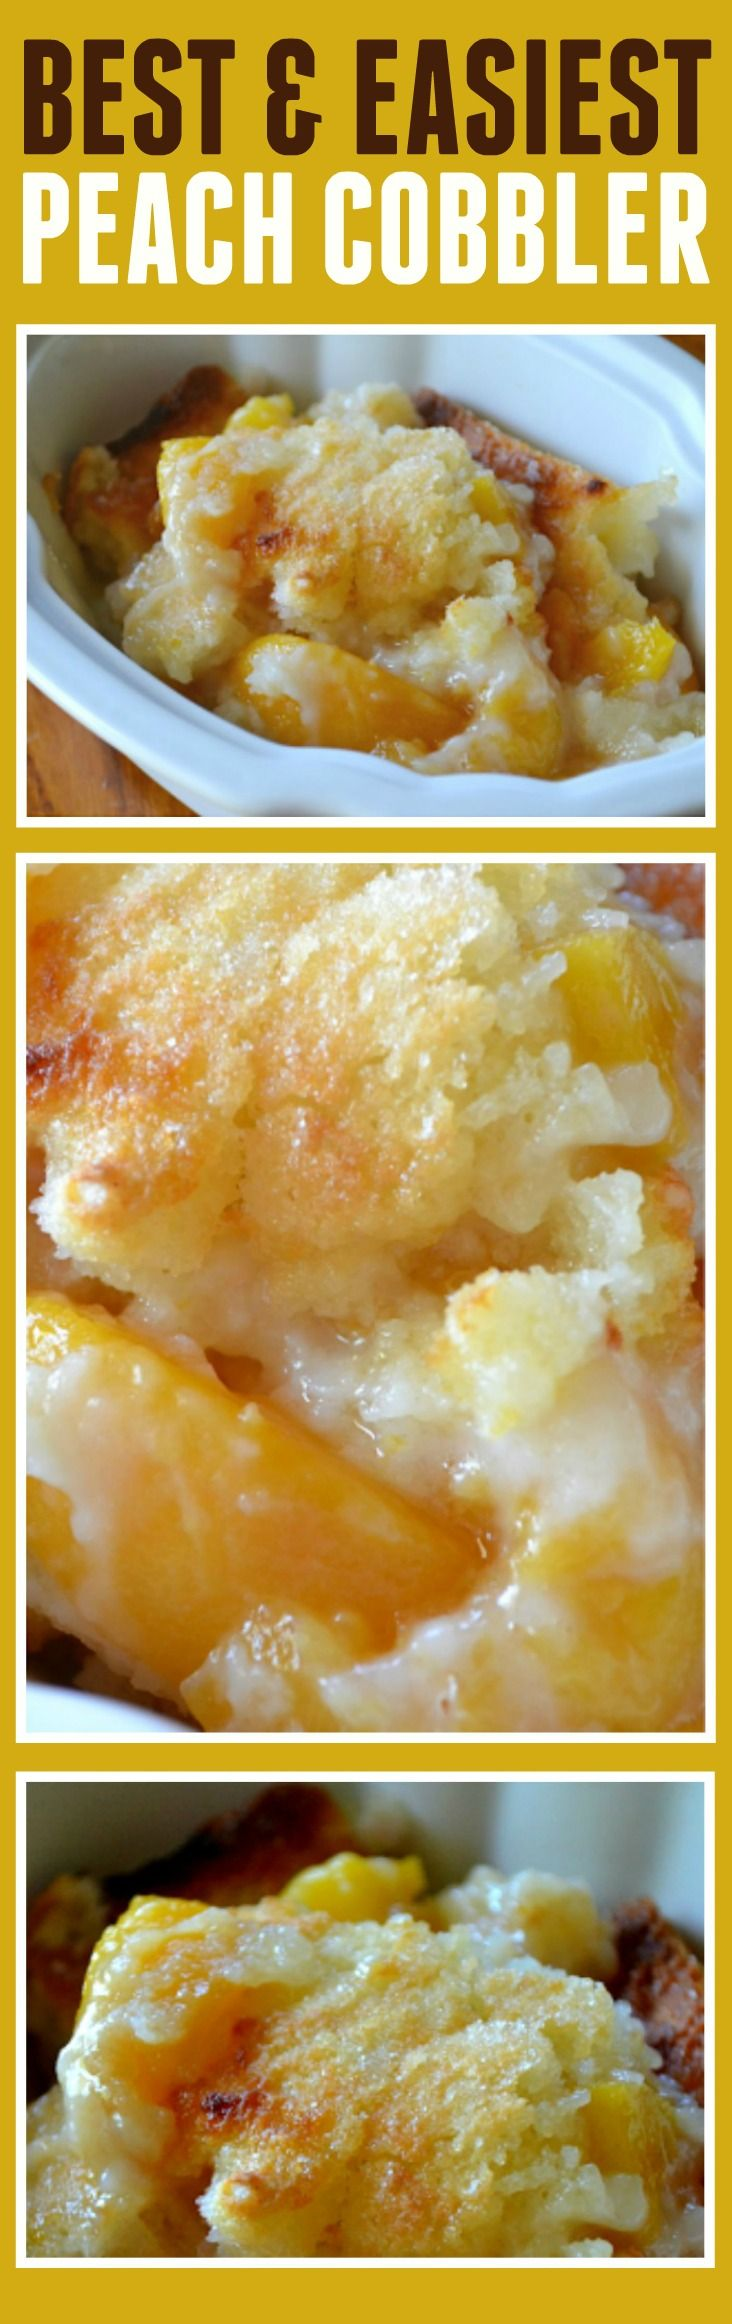 This peach cobbler recipe is the best and easiest recipe I have ever made. It doesn't hurt that it tastes super yum especially❤️when topped with a little vanilla bean ice cream. Drool!